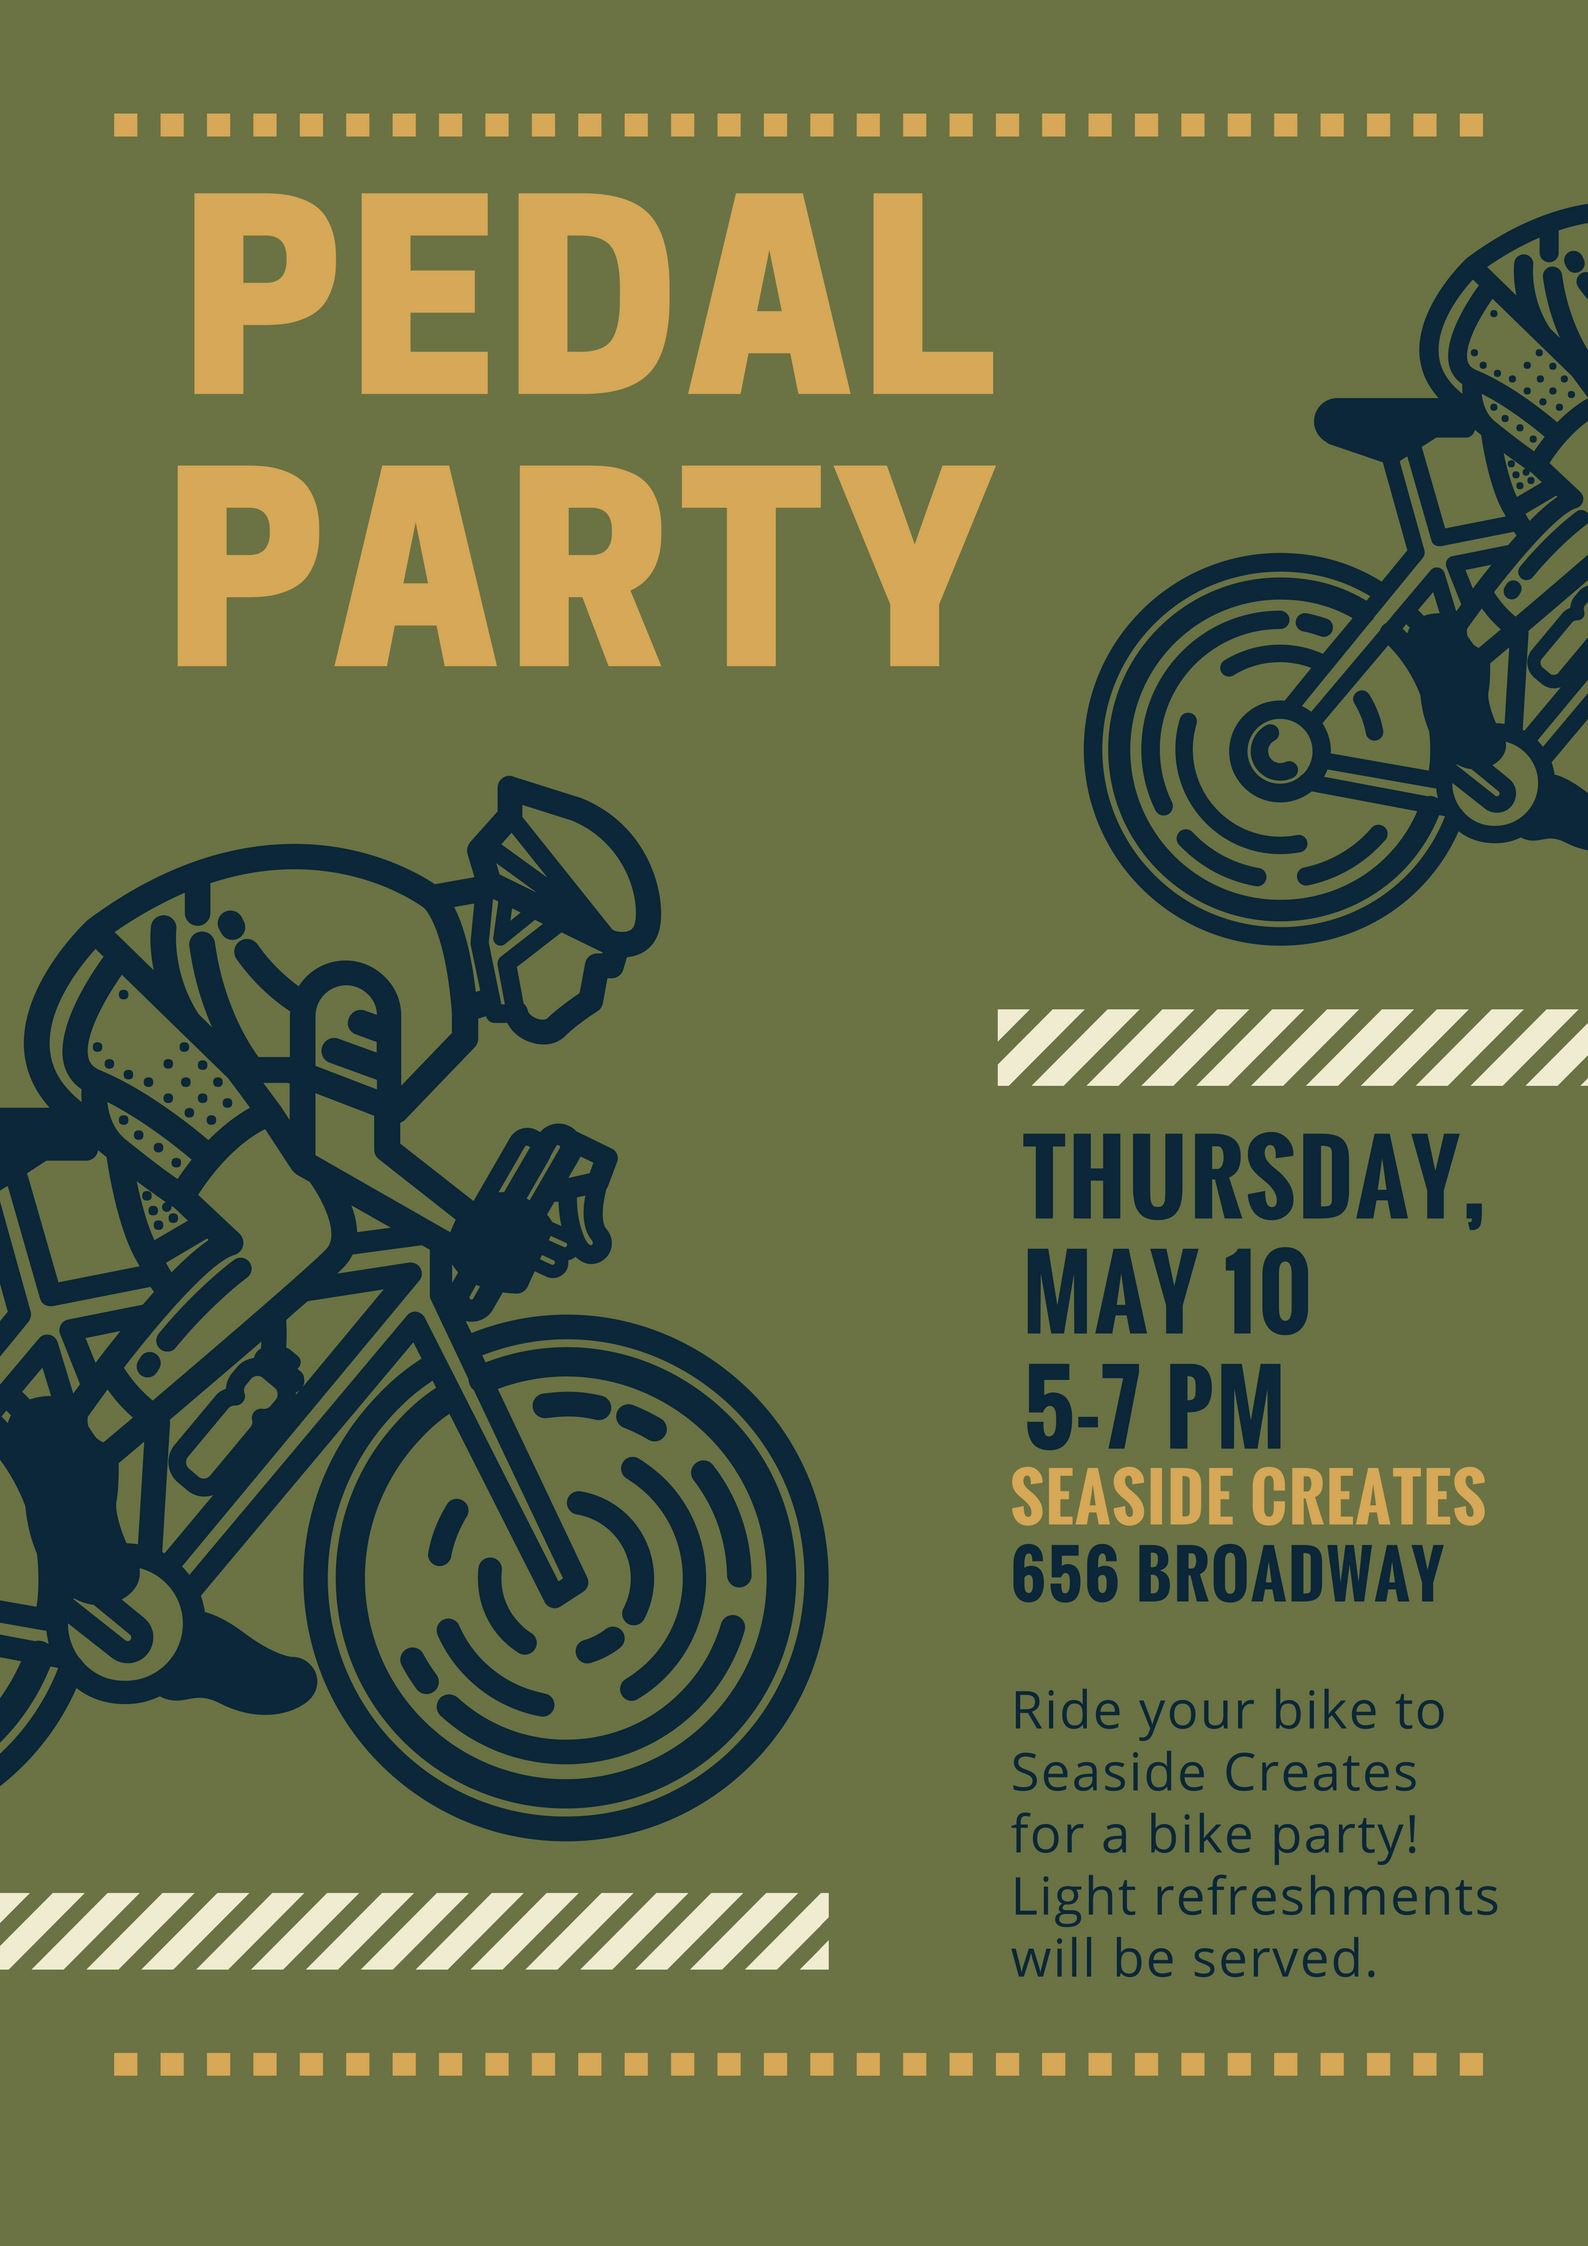 Pedal Party flyer with images of bicycle riders